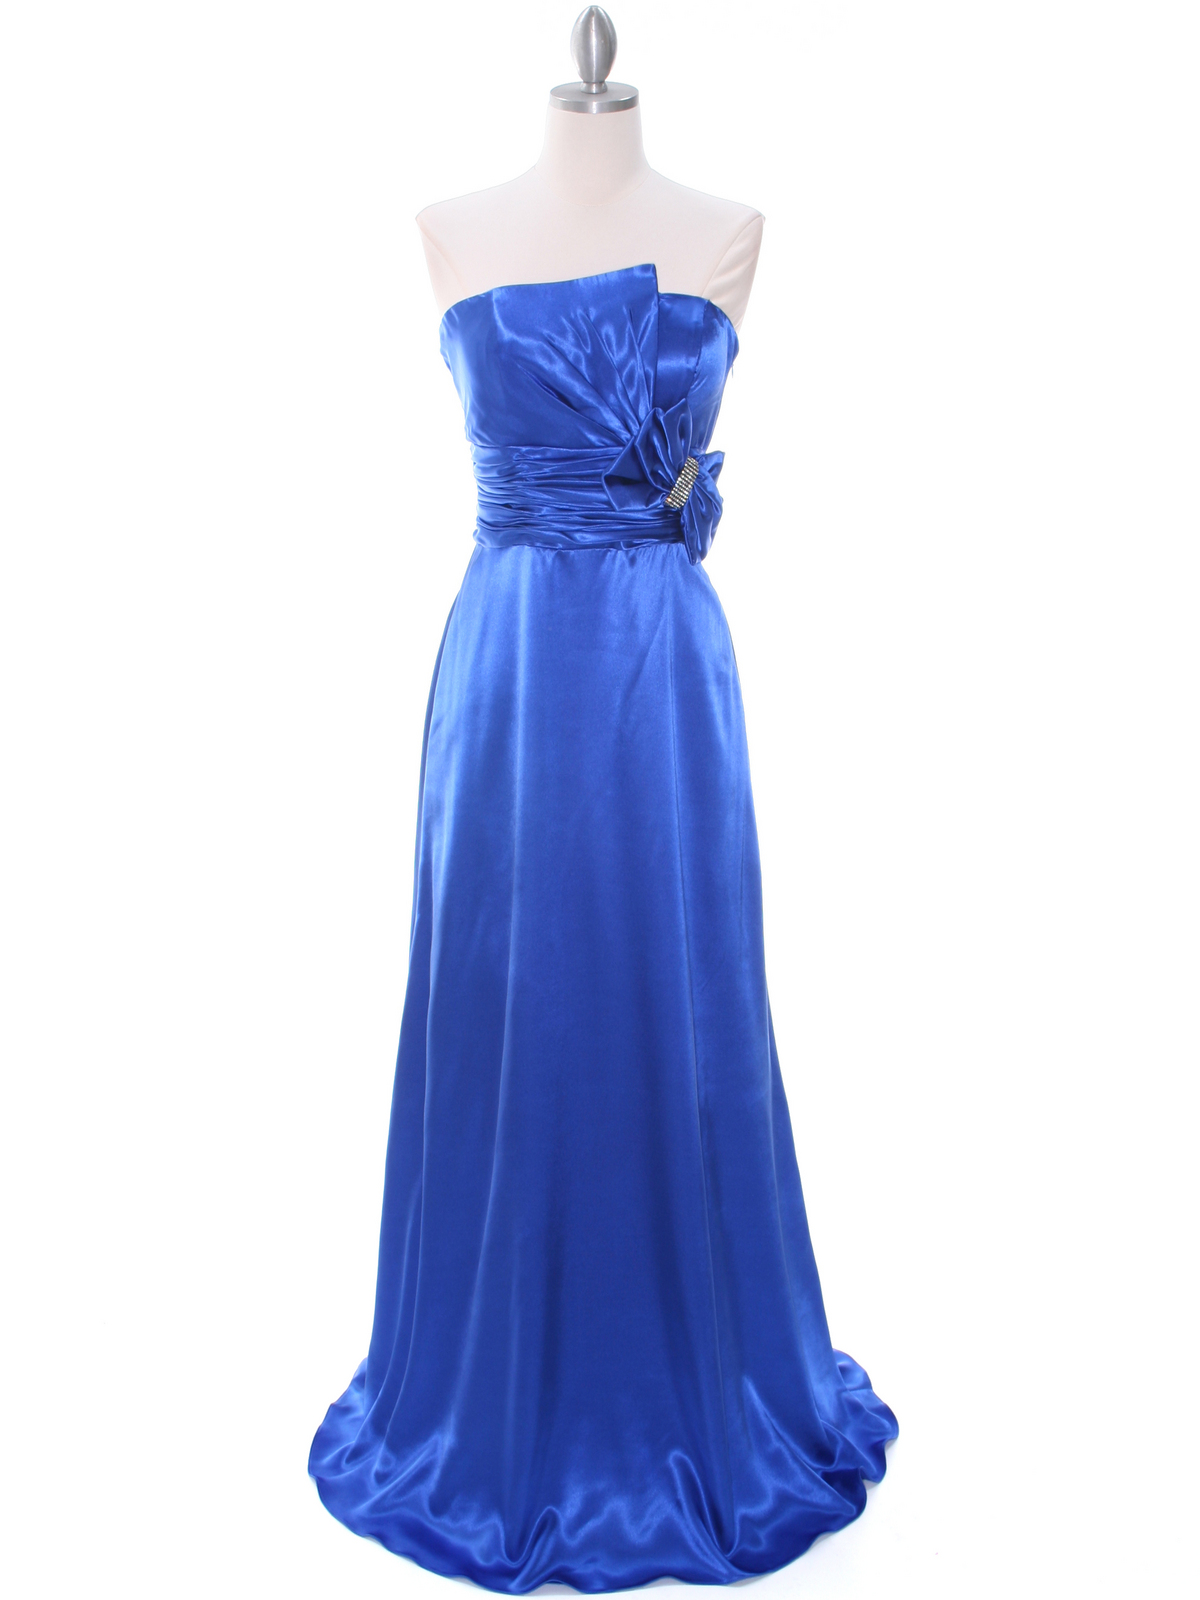 Whats appropriate dress for Air Force Ball? (female)? - Yahoo! Answers